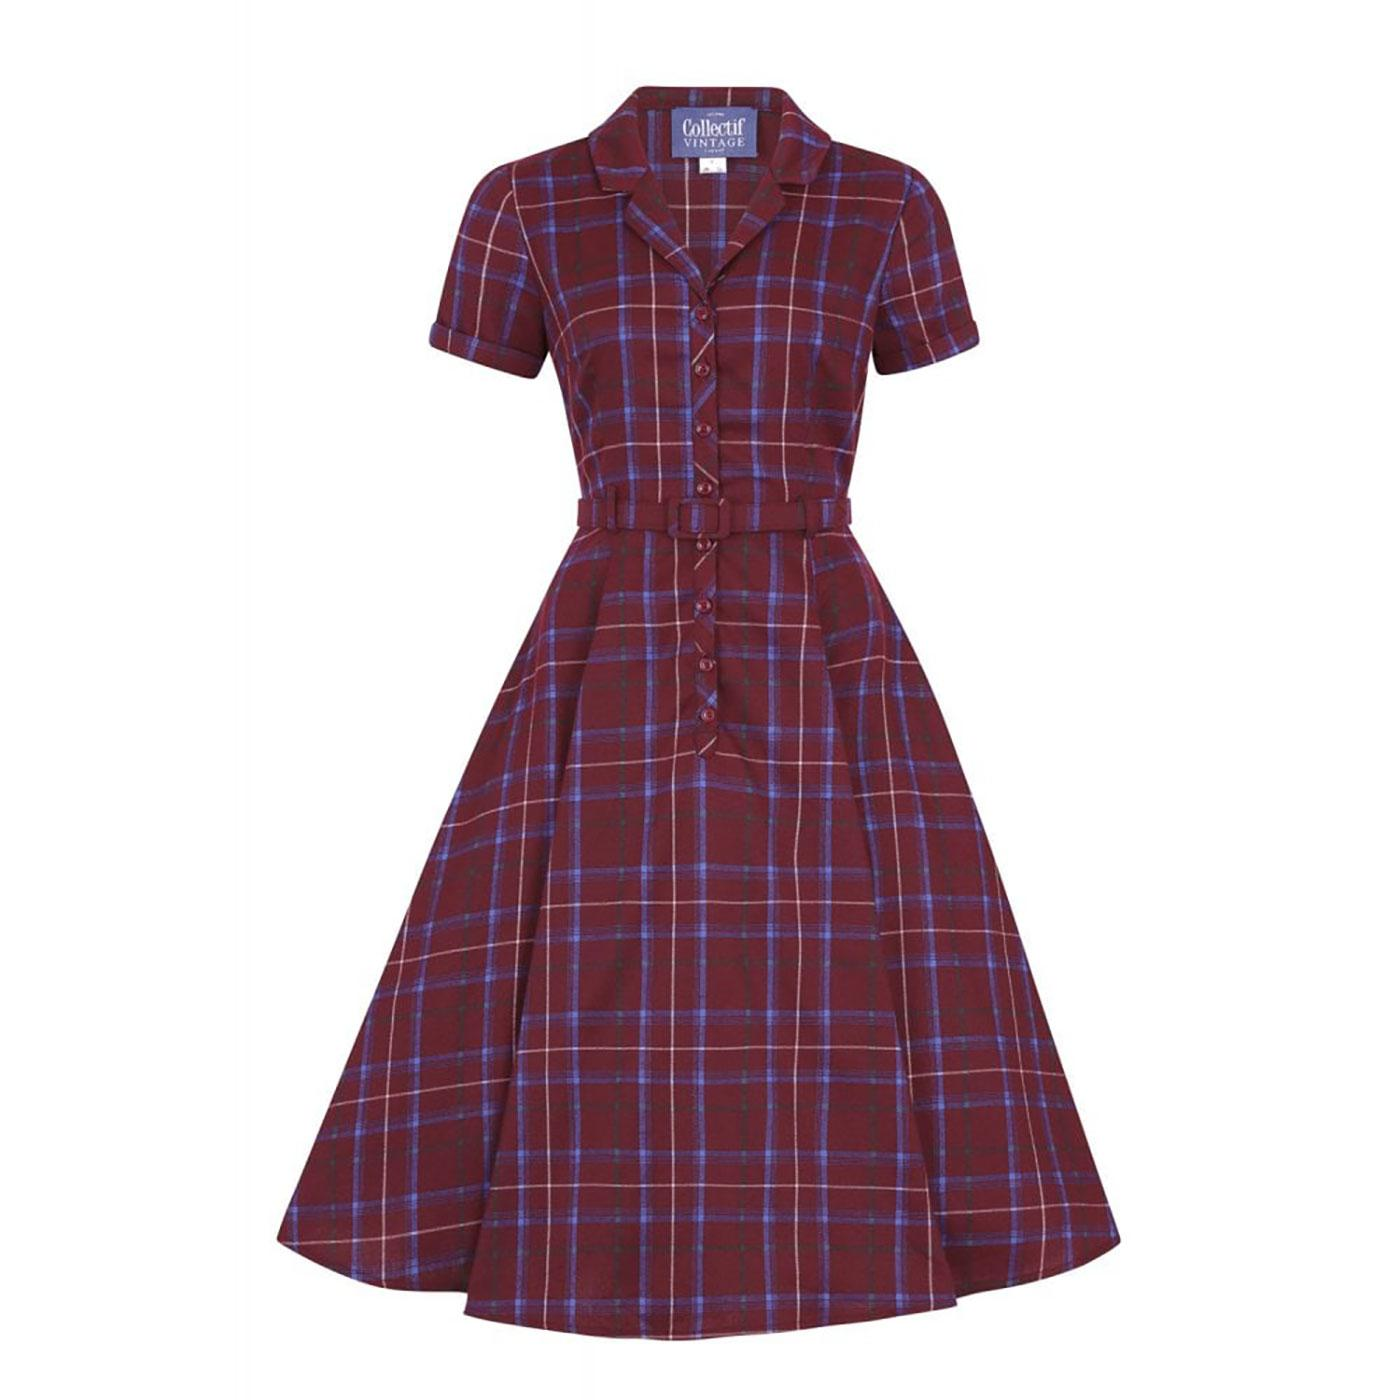 Caterina COLLECTIF 40's Vintage Check Swing Dress